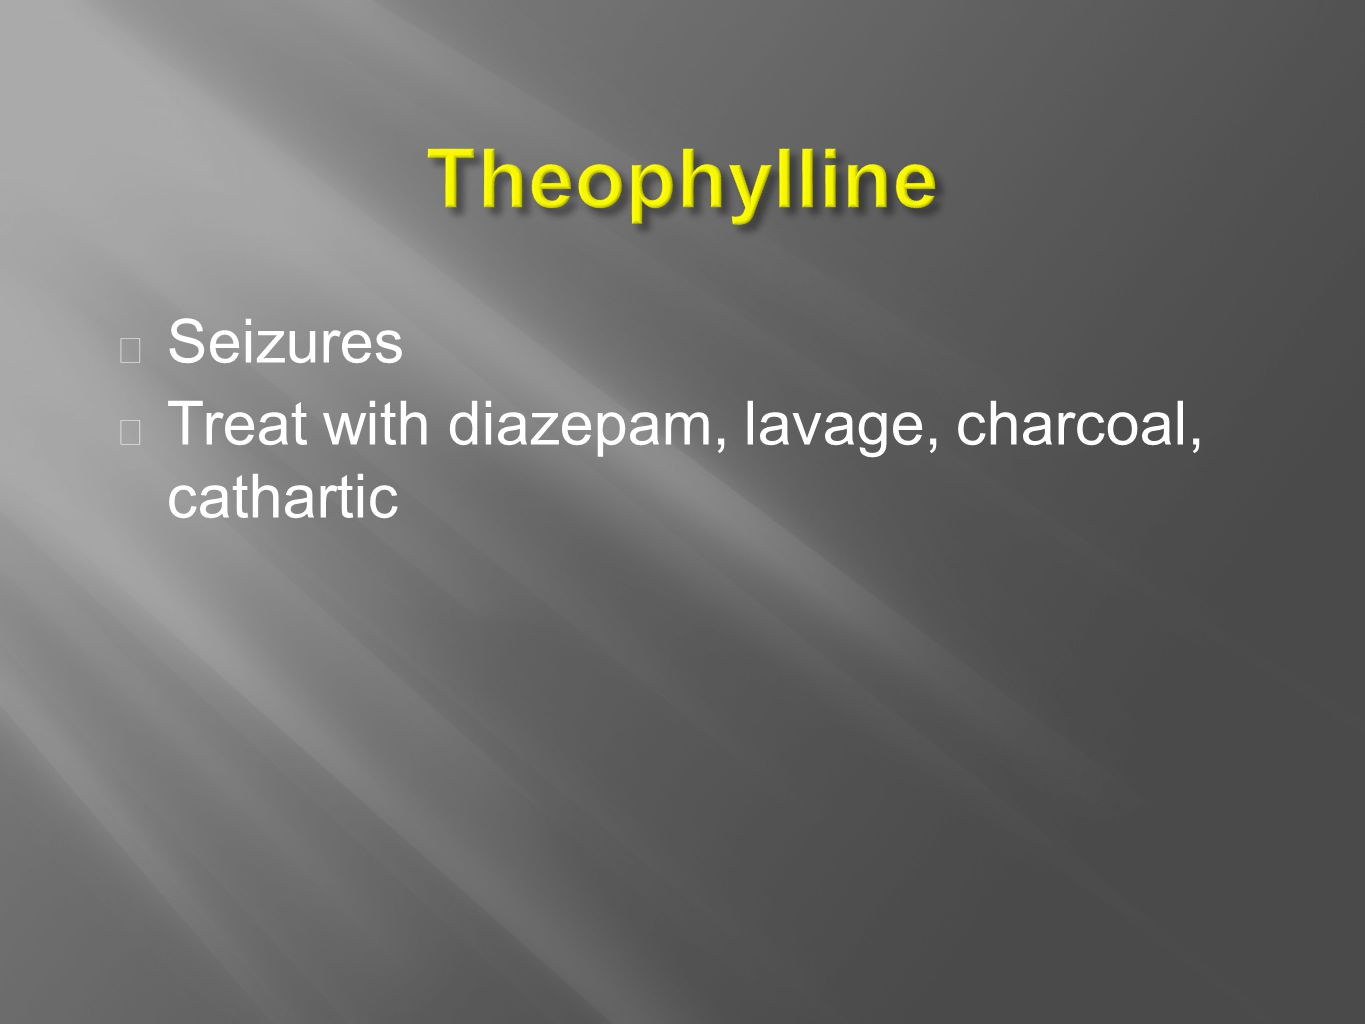  Seizures  Treat with diazepam, lavage, charcoal, cathartic